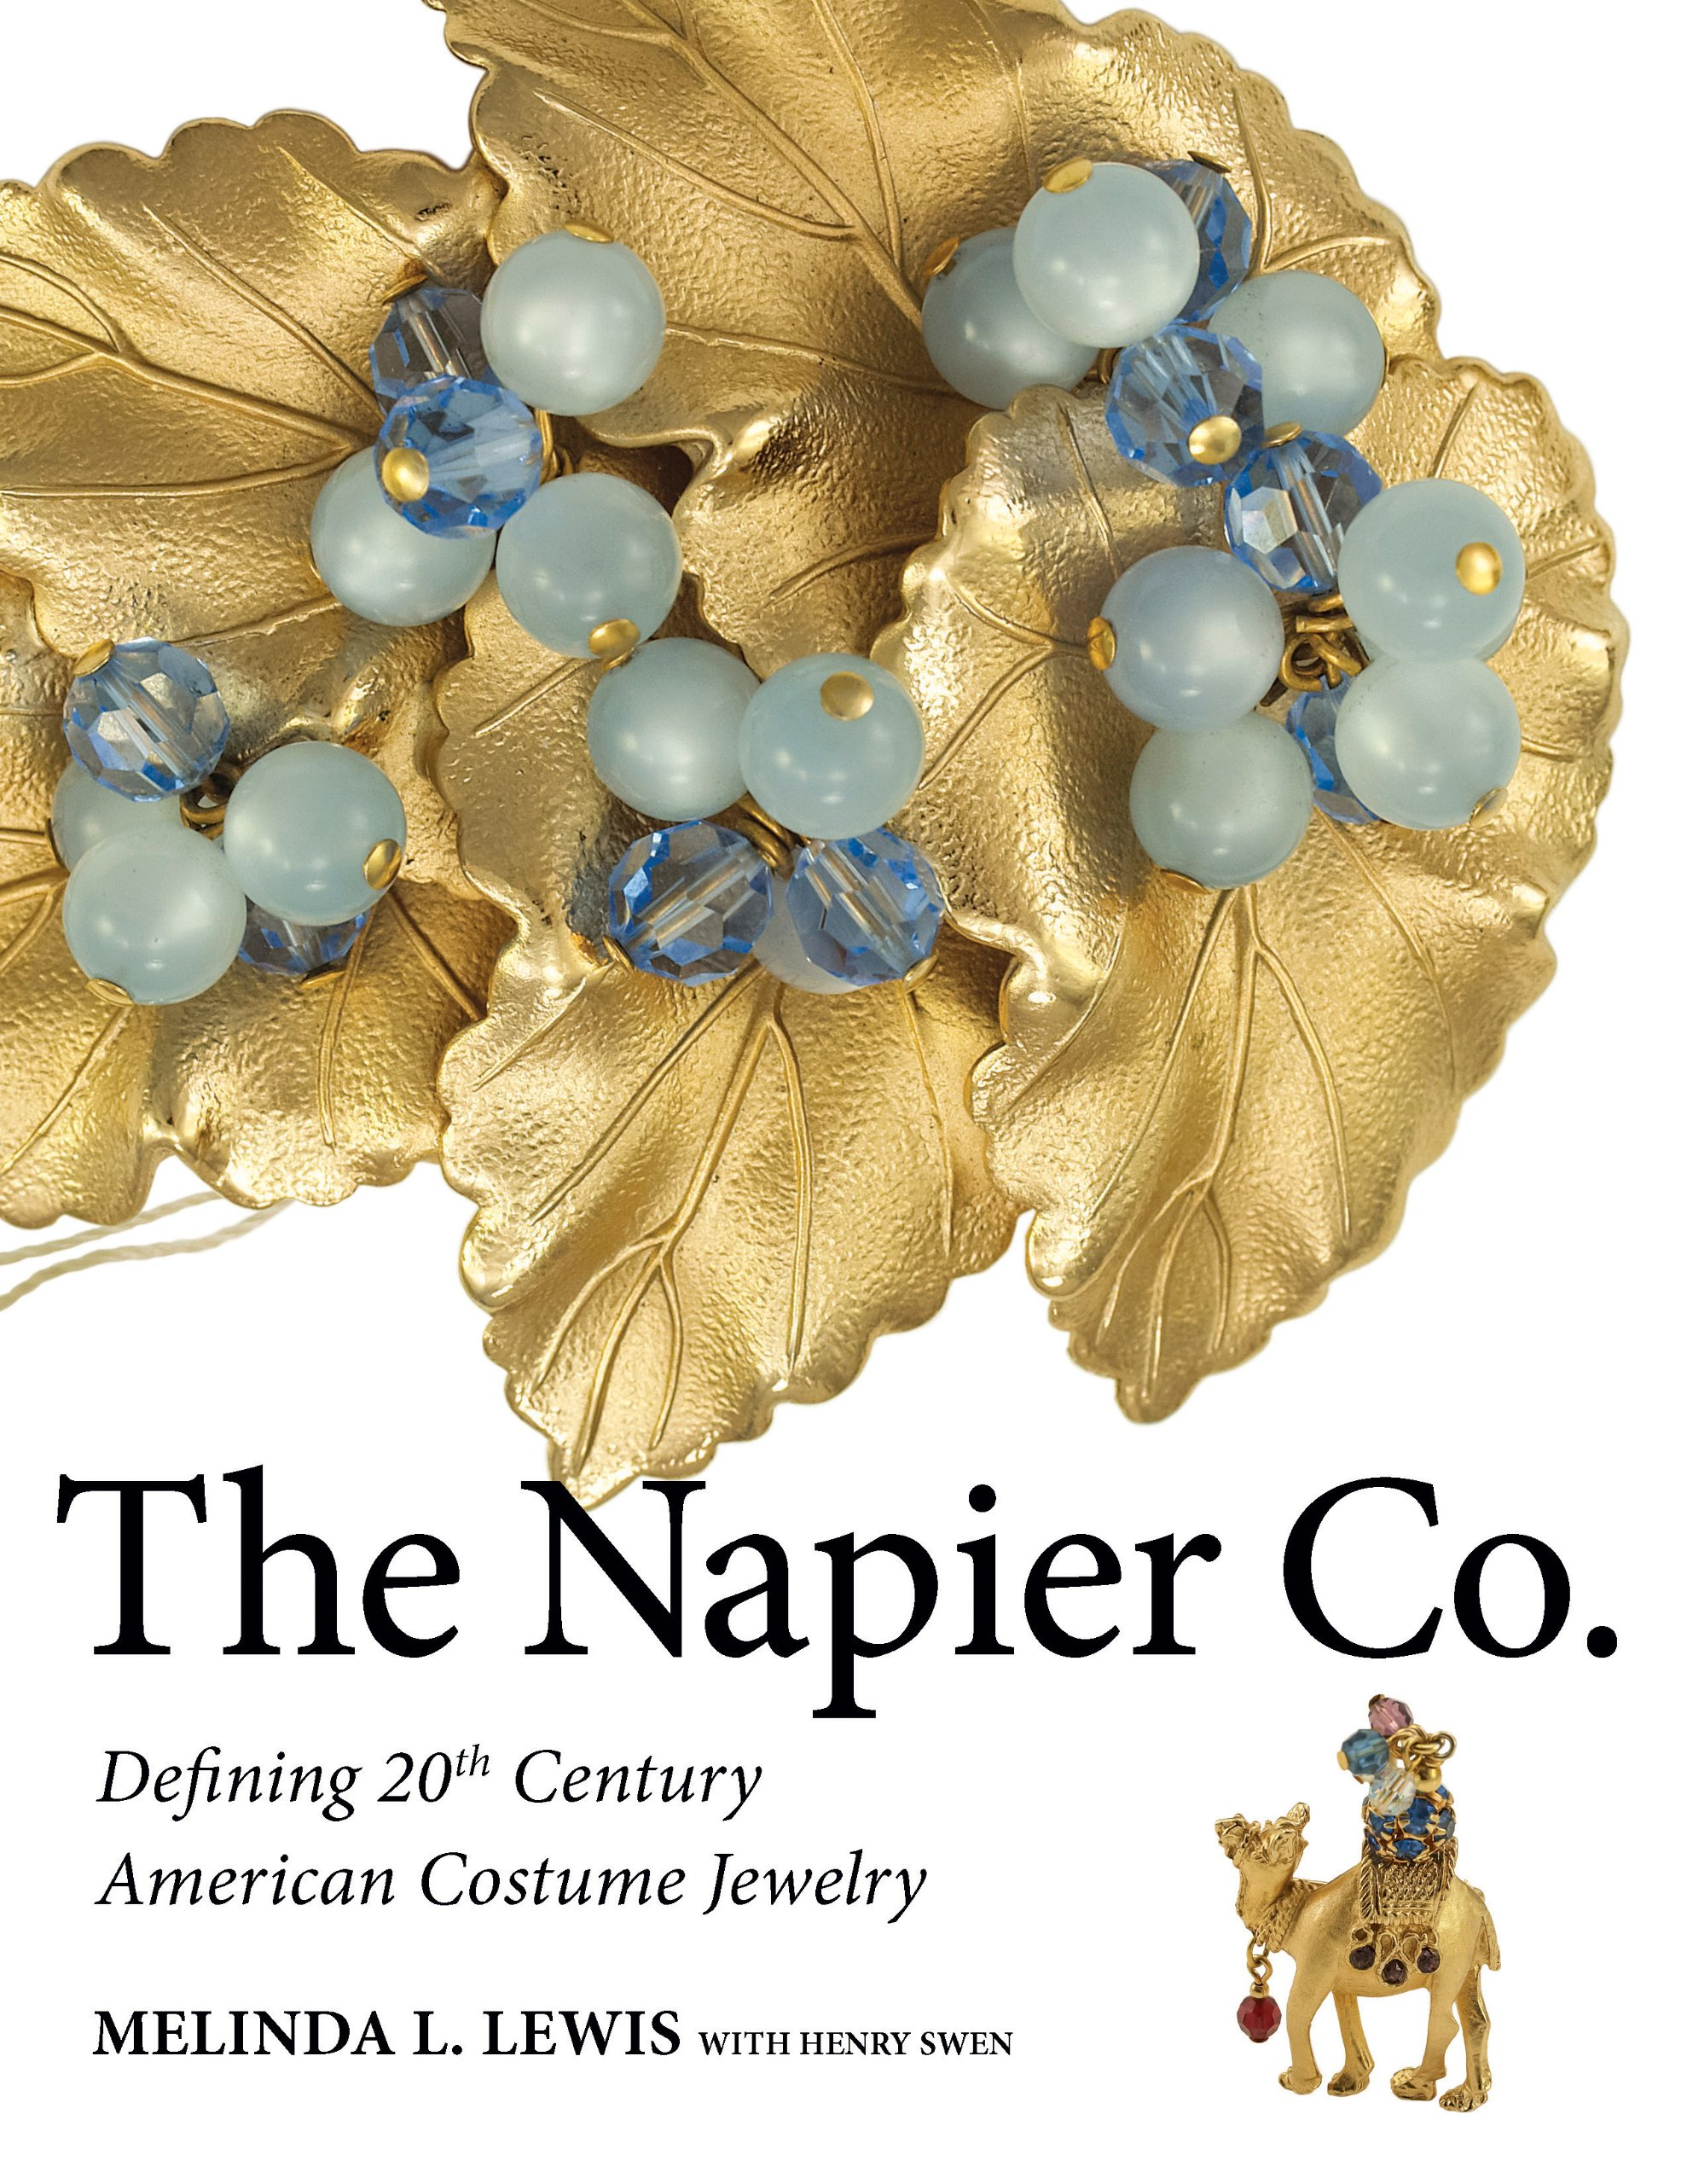 The Napier Co. Defining 20th Century American Costume Jewelry